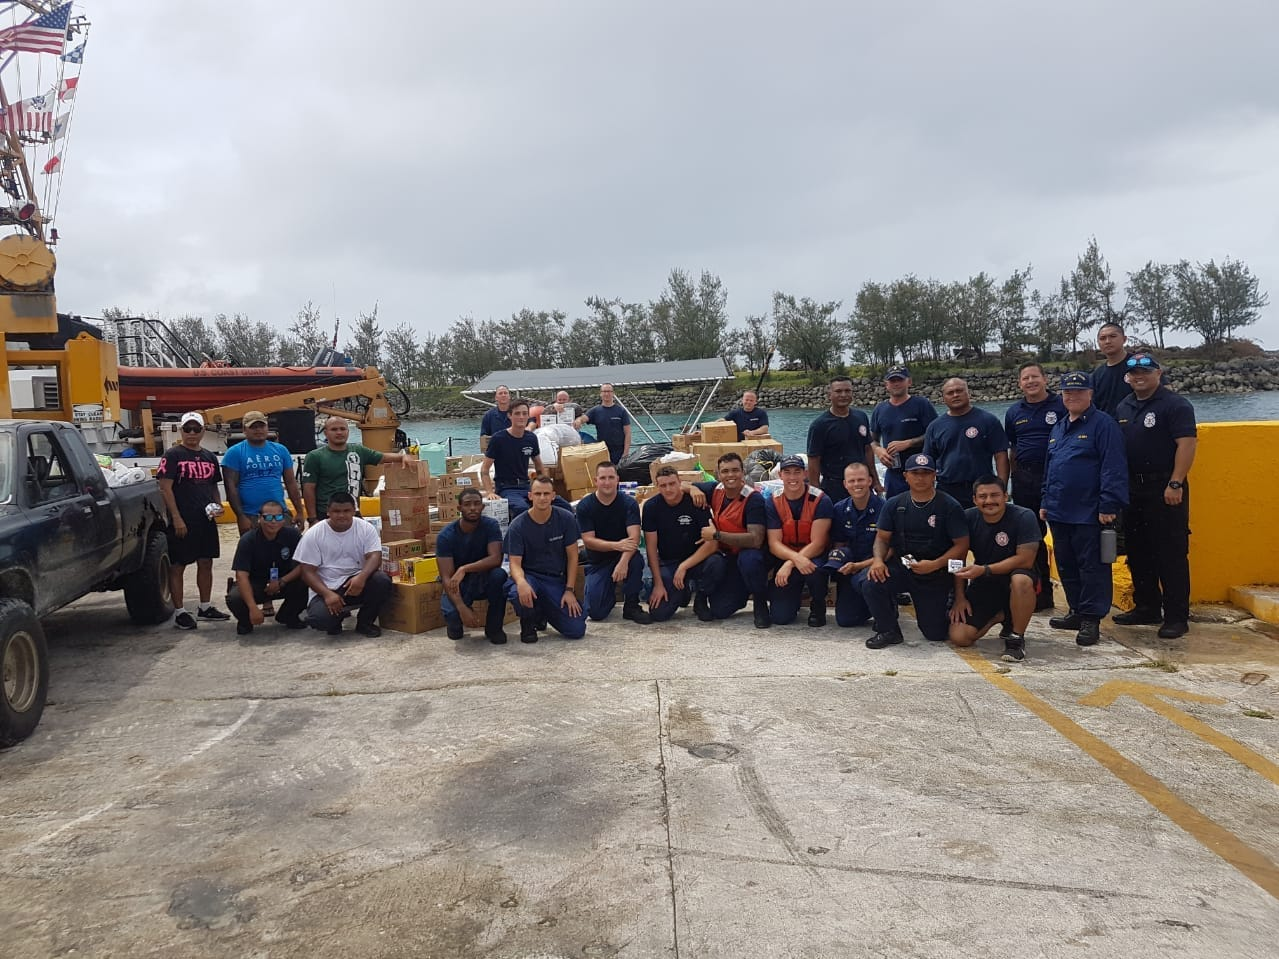 The Guam Fire Department, working with the Western Pacific Islands Association of Fire Chiefs, recently held a relief drive on Guam Rota residents the wake of Typhoon Mangkhut, which made landfall on September 10, 2018.  More than 10 pallets of canned goods, butane stoves, clothing, flashlights, and batteries were donated from community members and businesses. Coast Guard Sector Guam launched the Cutter Kiska to transport the goods on Sept. 19, GFD said.